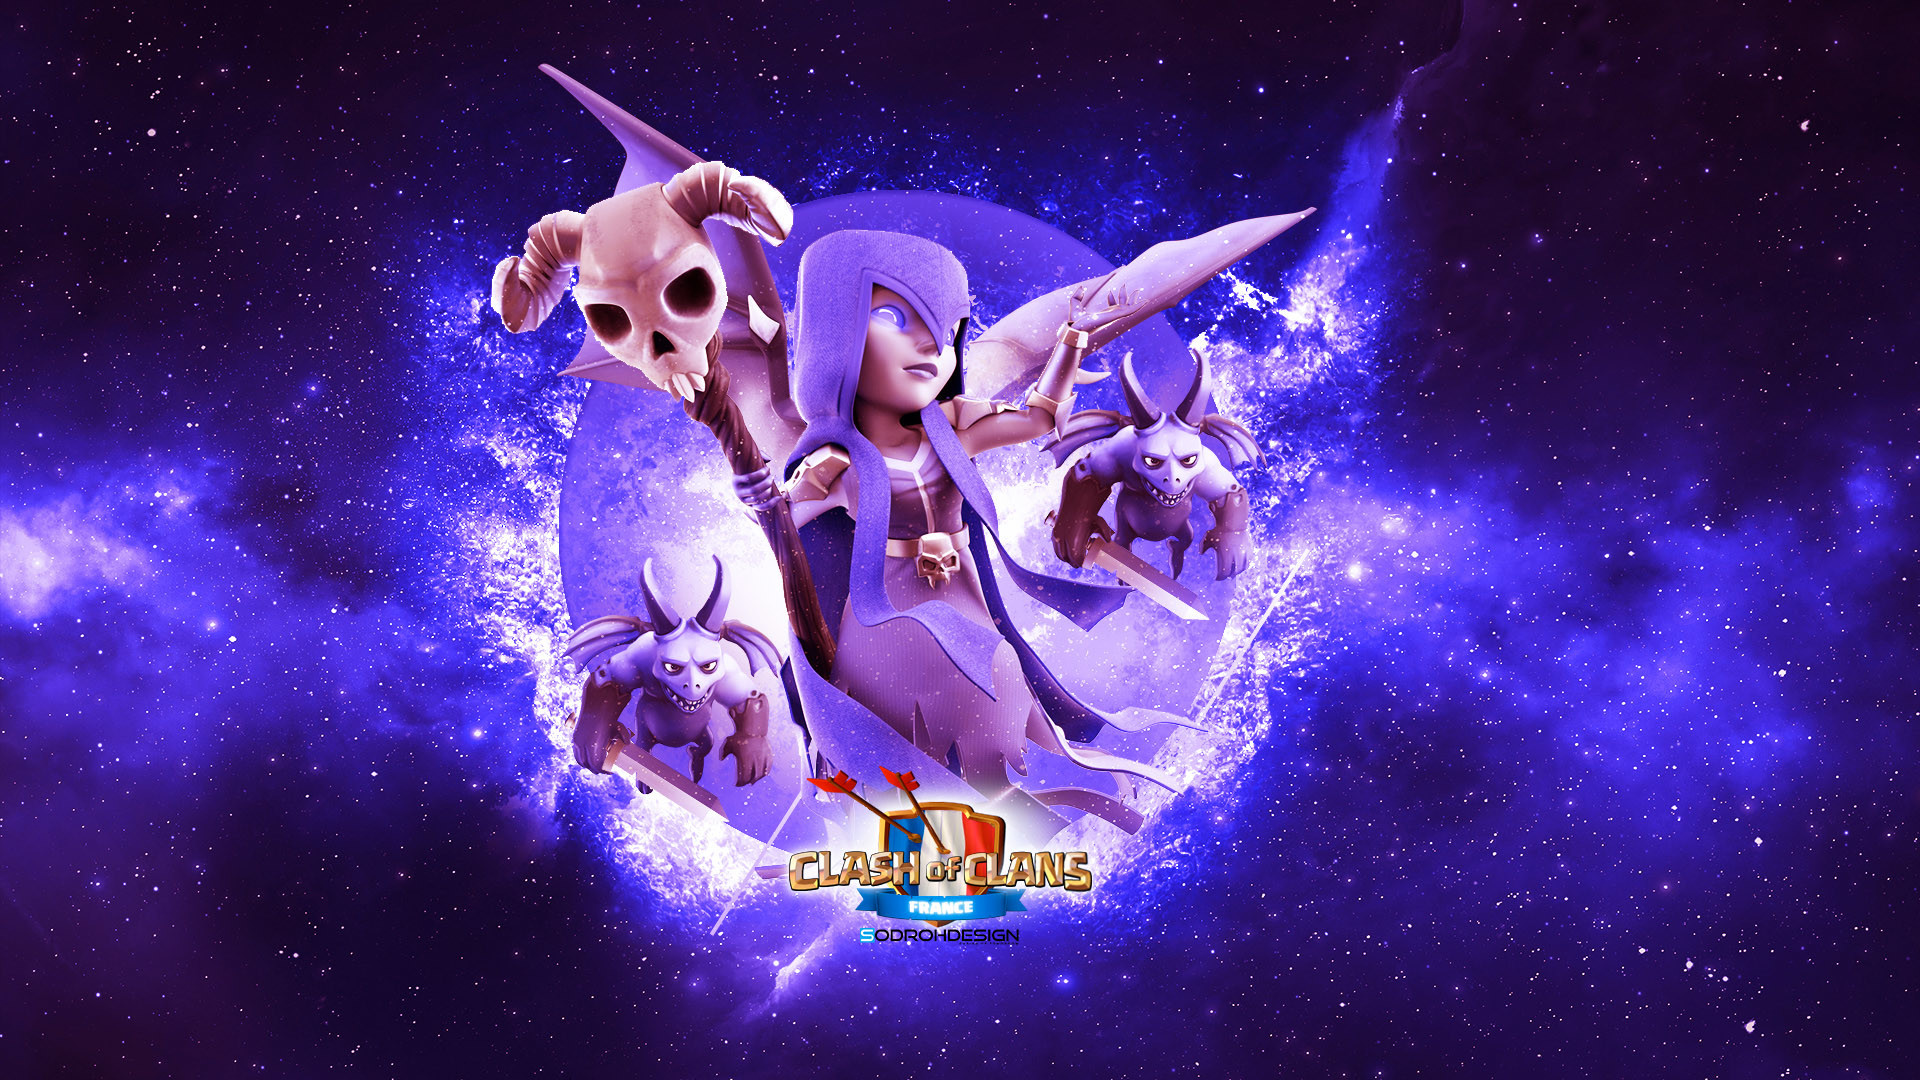 Clash Of Clans Wallpaper Pekka Posted By Michelle Johnson